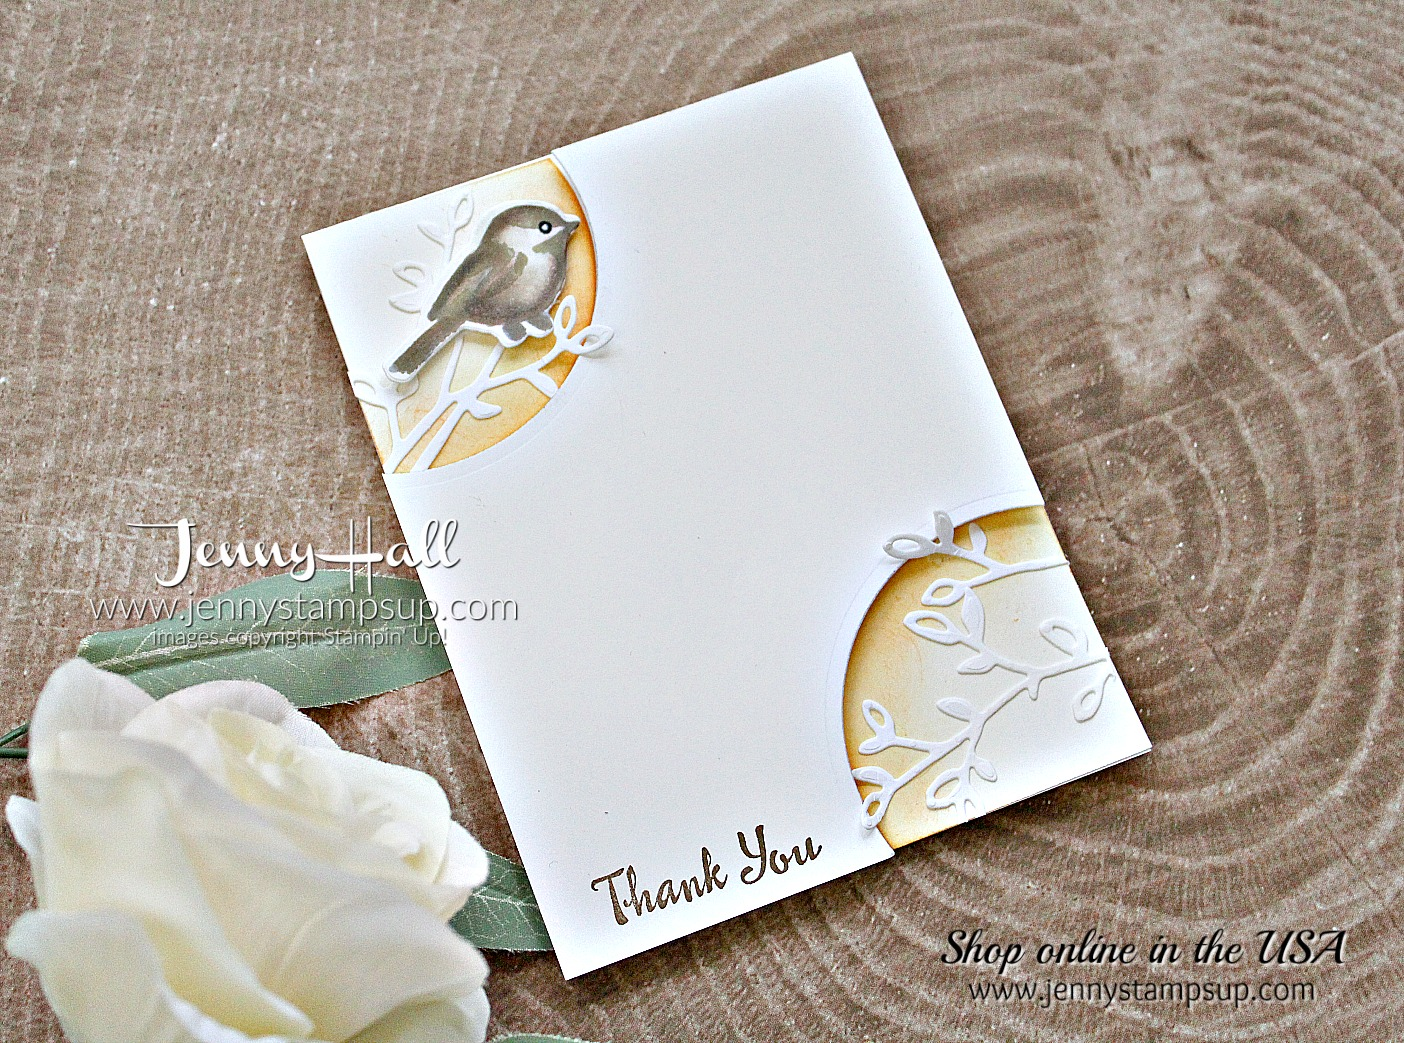 Morning Sun Petal Palette card by Jenny Hall at www.jennyhalldesign.com for #stampinup #cardmaking #cascards #cleanandsimplecards #jennystampsup #jennyhallstampinup #jennyhalldesign #cardmakingchallenge #cardmakingtechnique #videotutorial #cardmakingtechnique #scrapbooking and more!